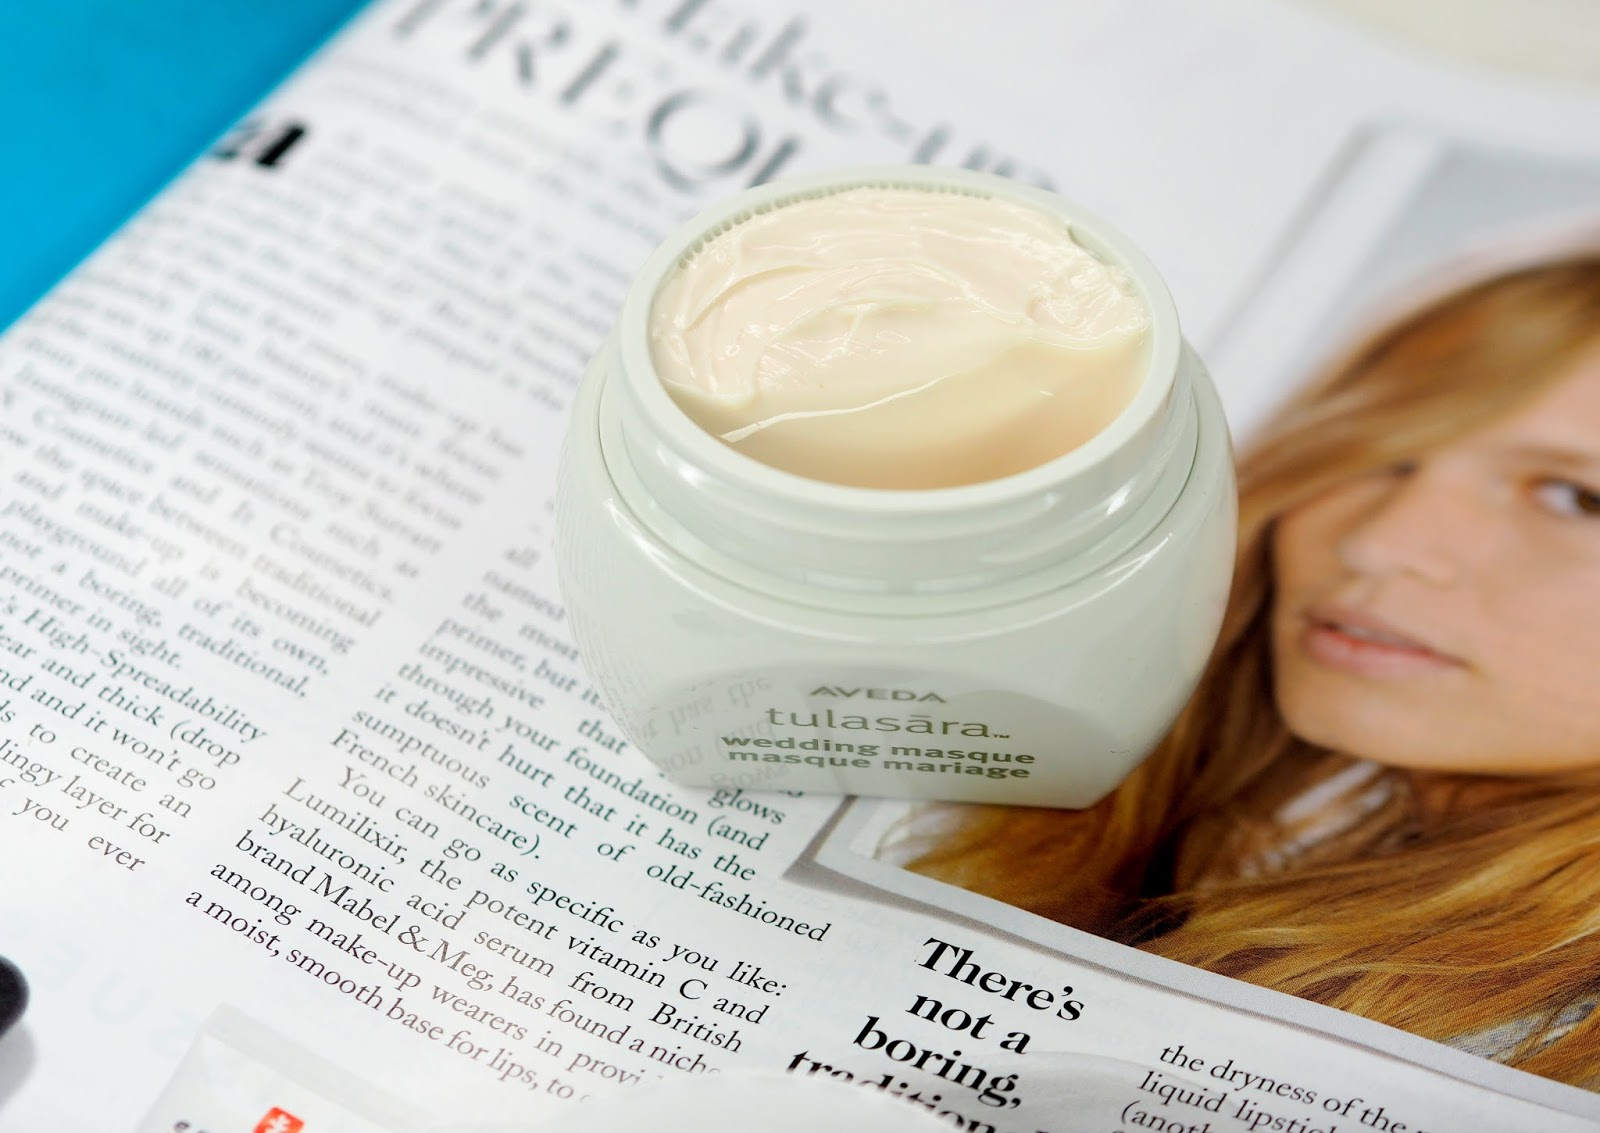 Review Aveda Wedding Masque The Beauty Informer